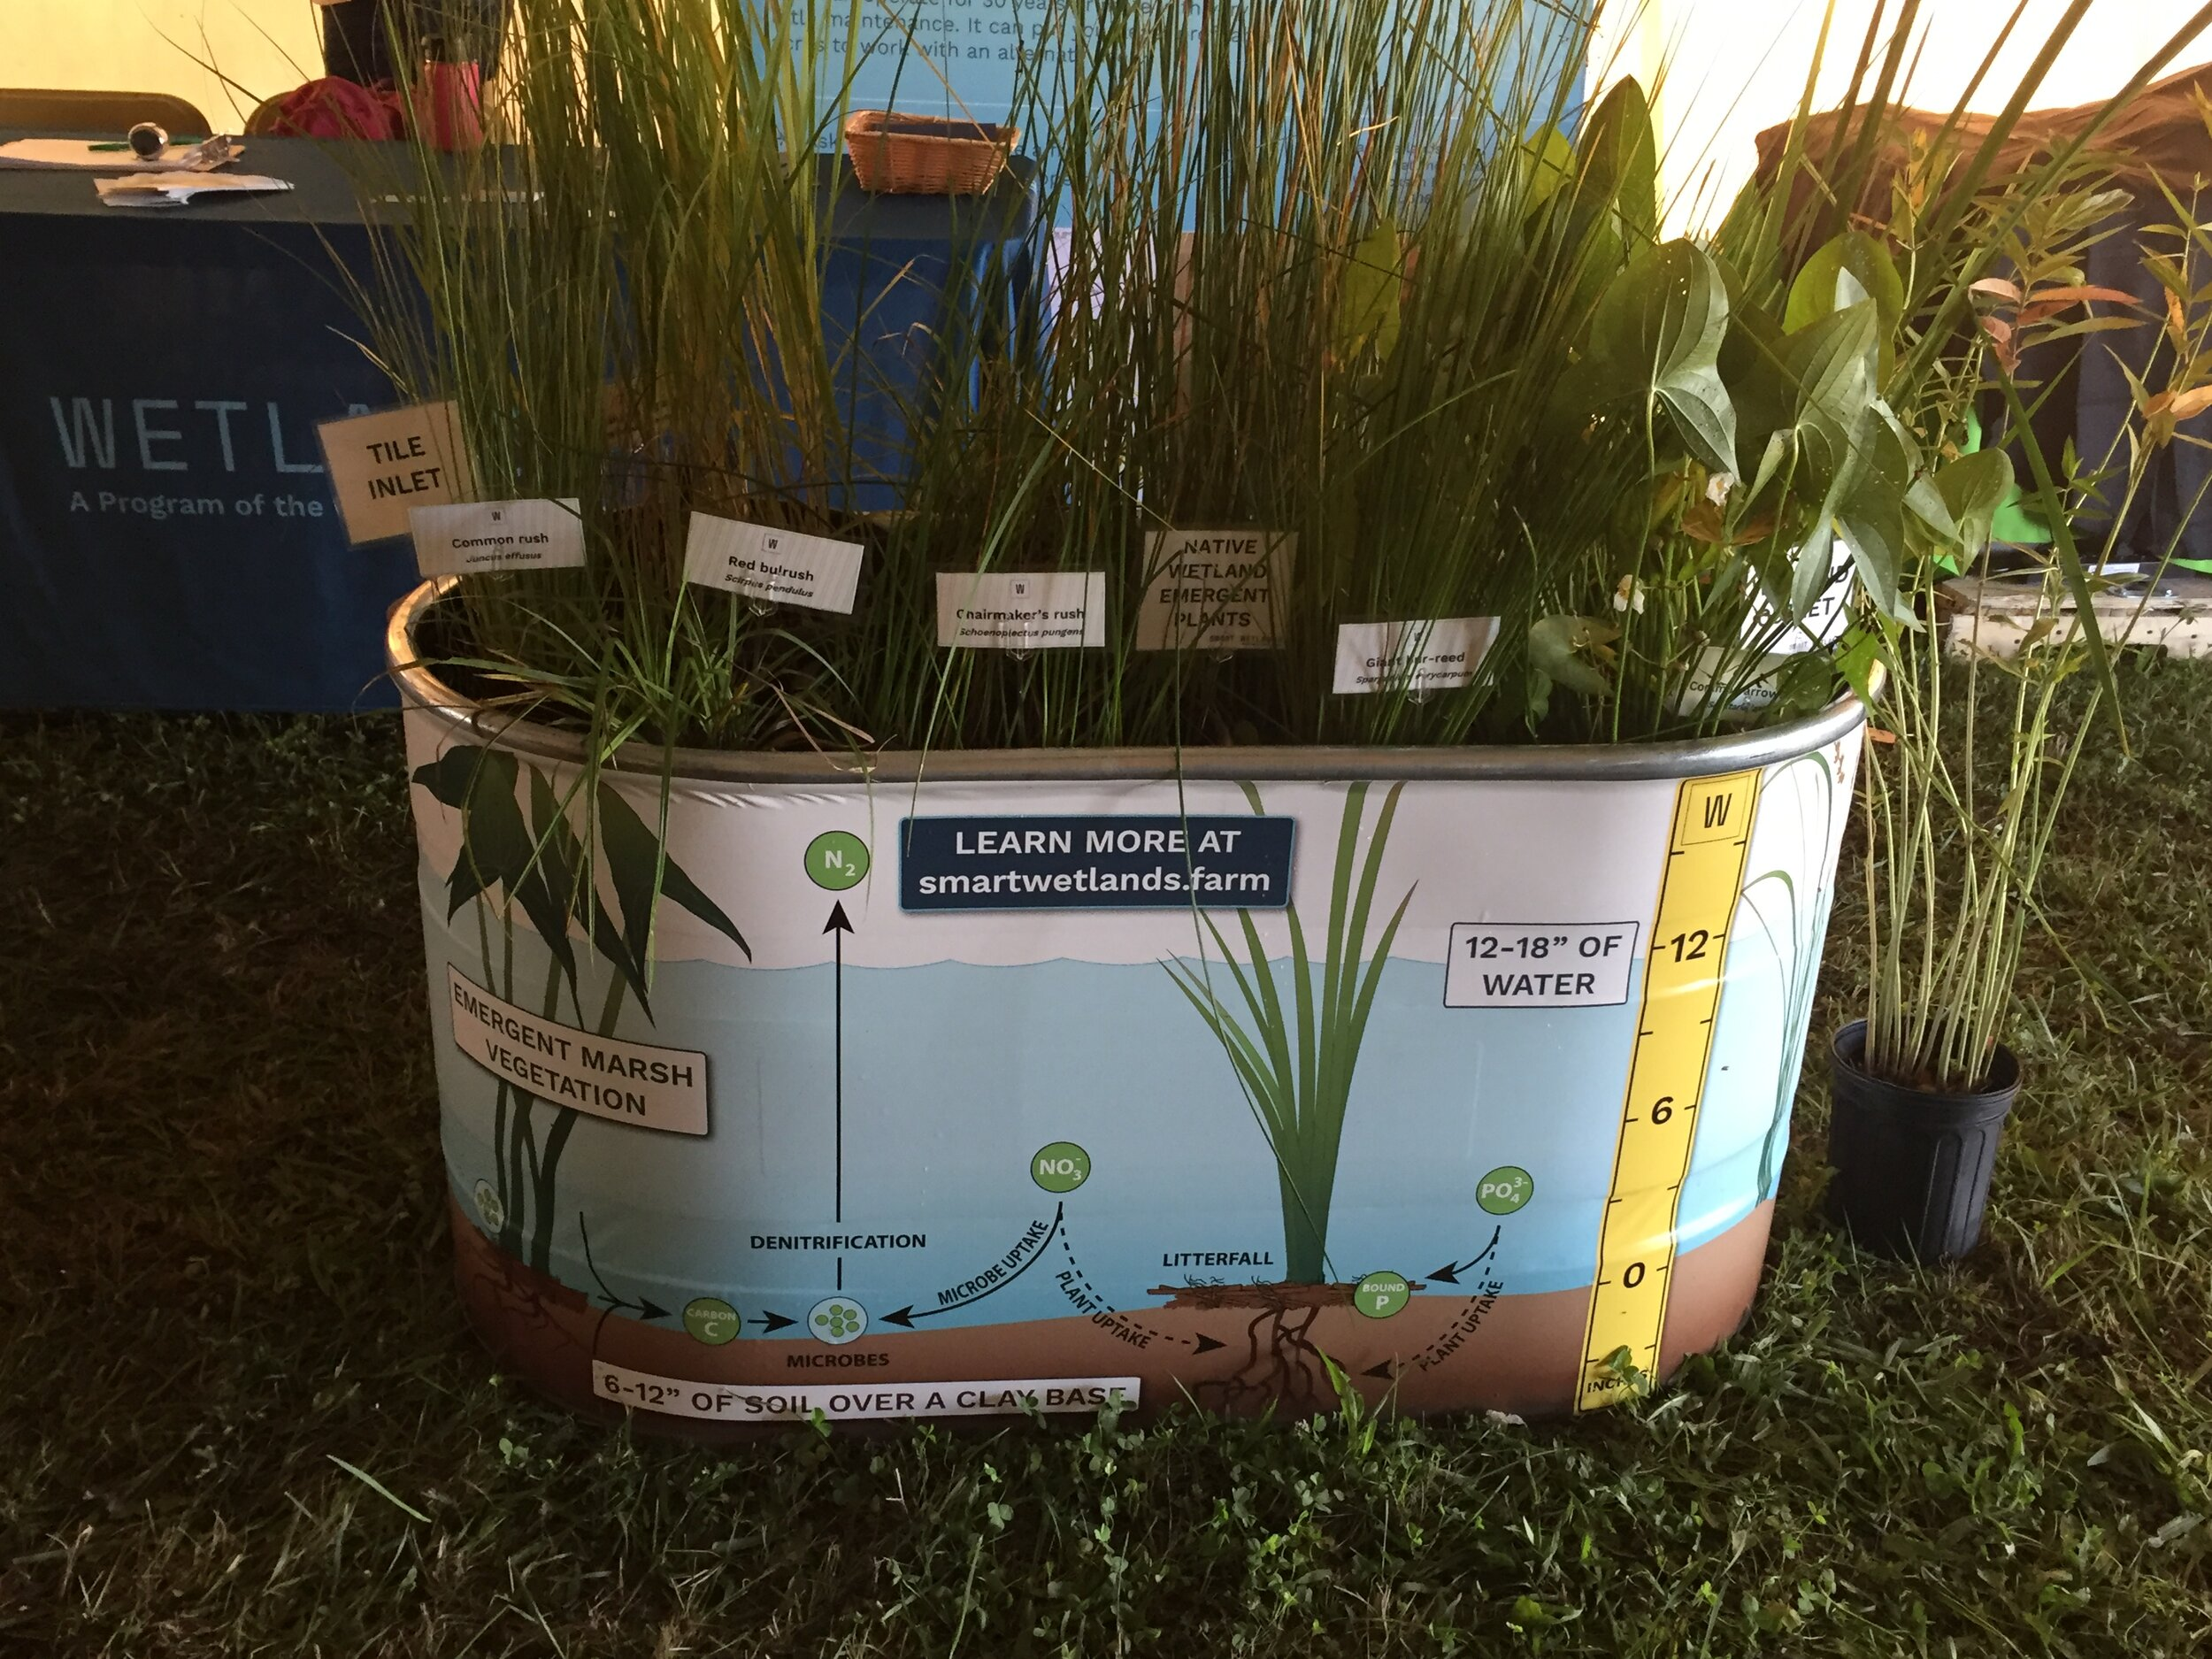 TWI's Farm Progress Show display included an informative small-scale replica of a Smart Wetland. Photo by Jean McGuire/TWI.